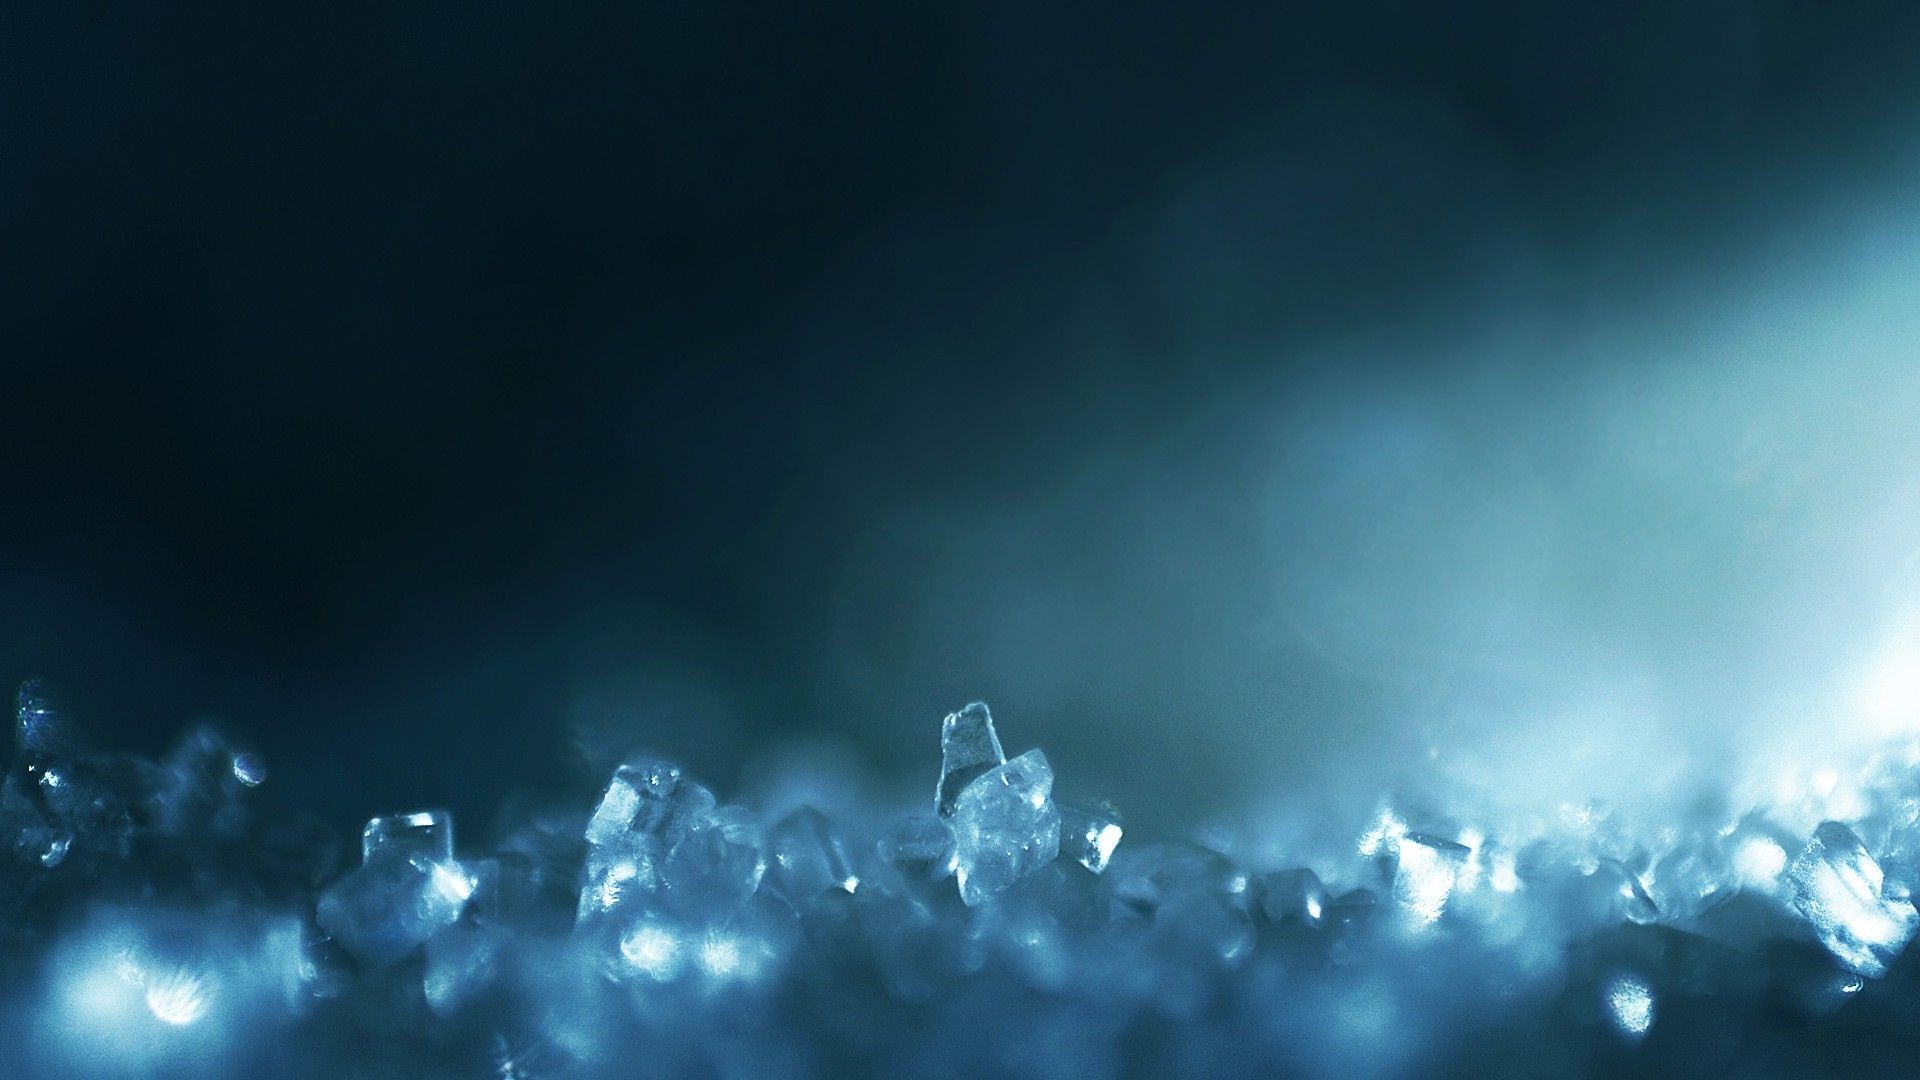 1920x1080 Wallpapers Ice Crystal Wallpapers